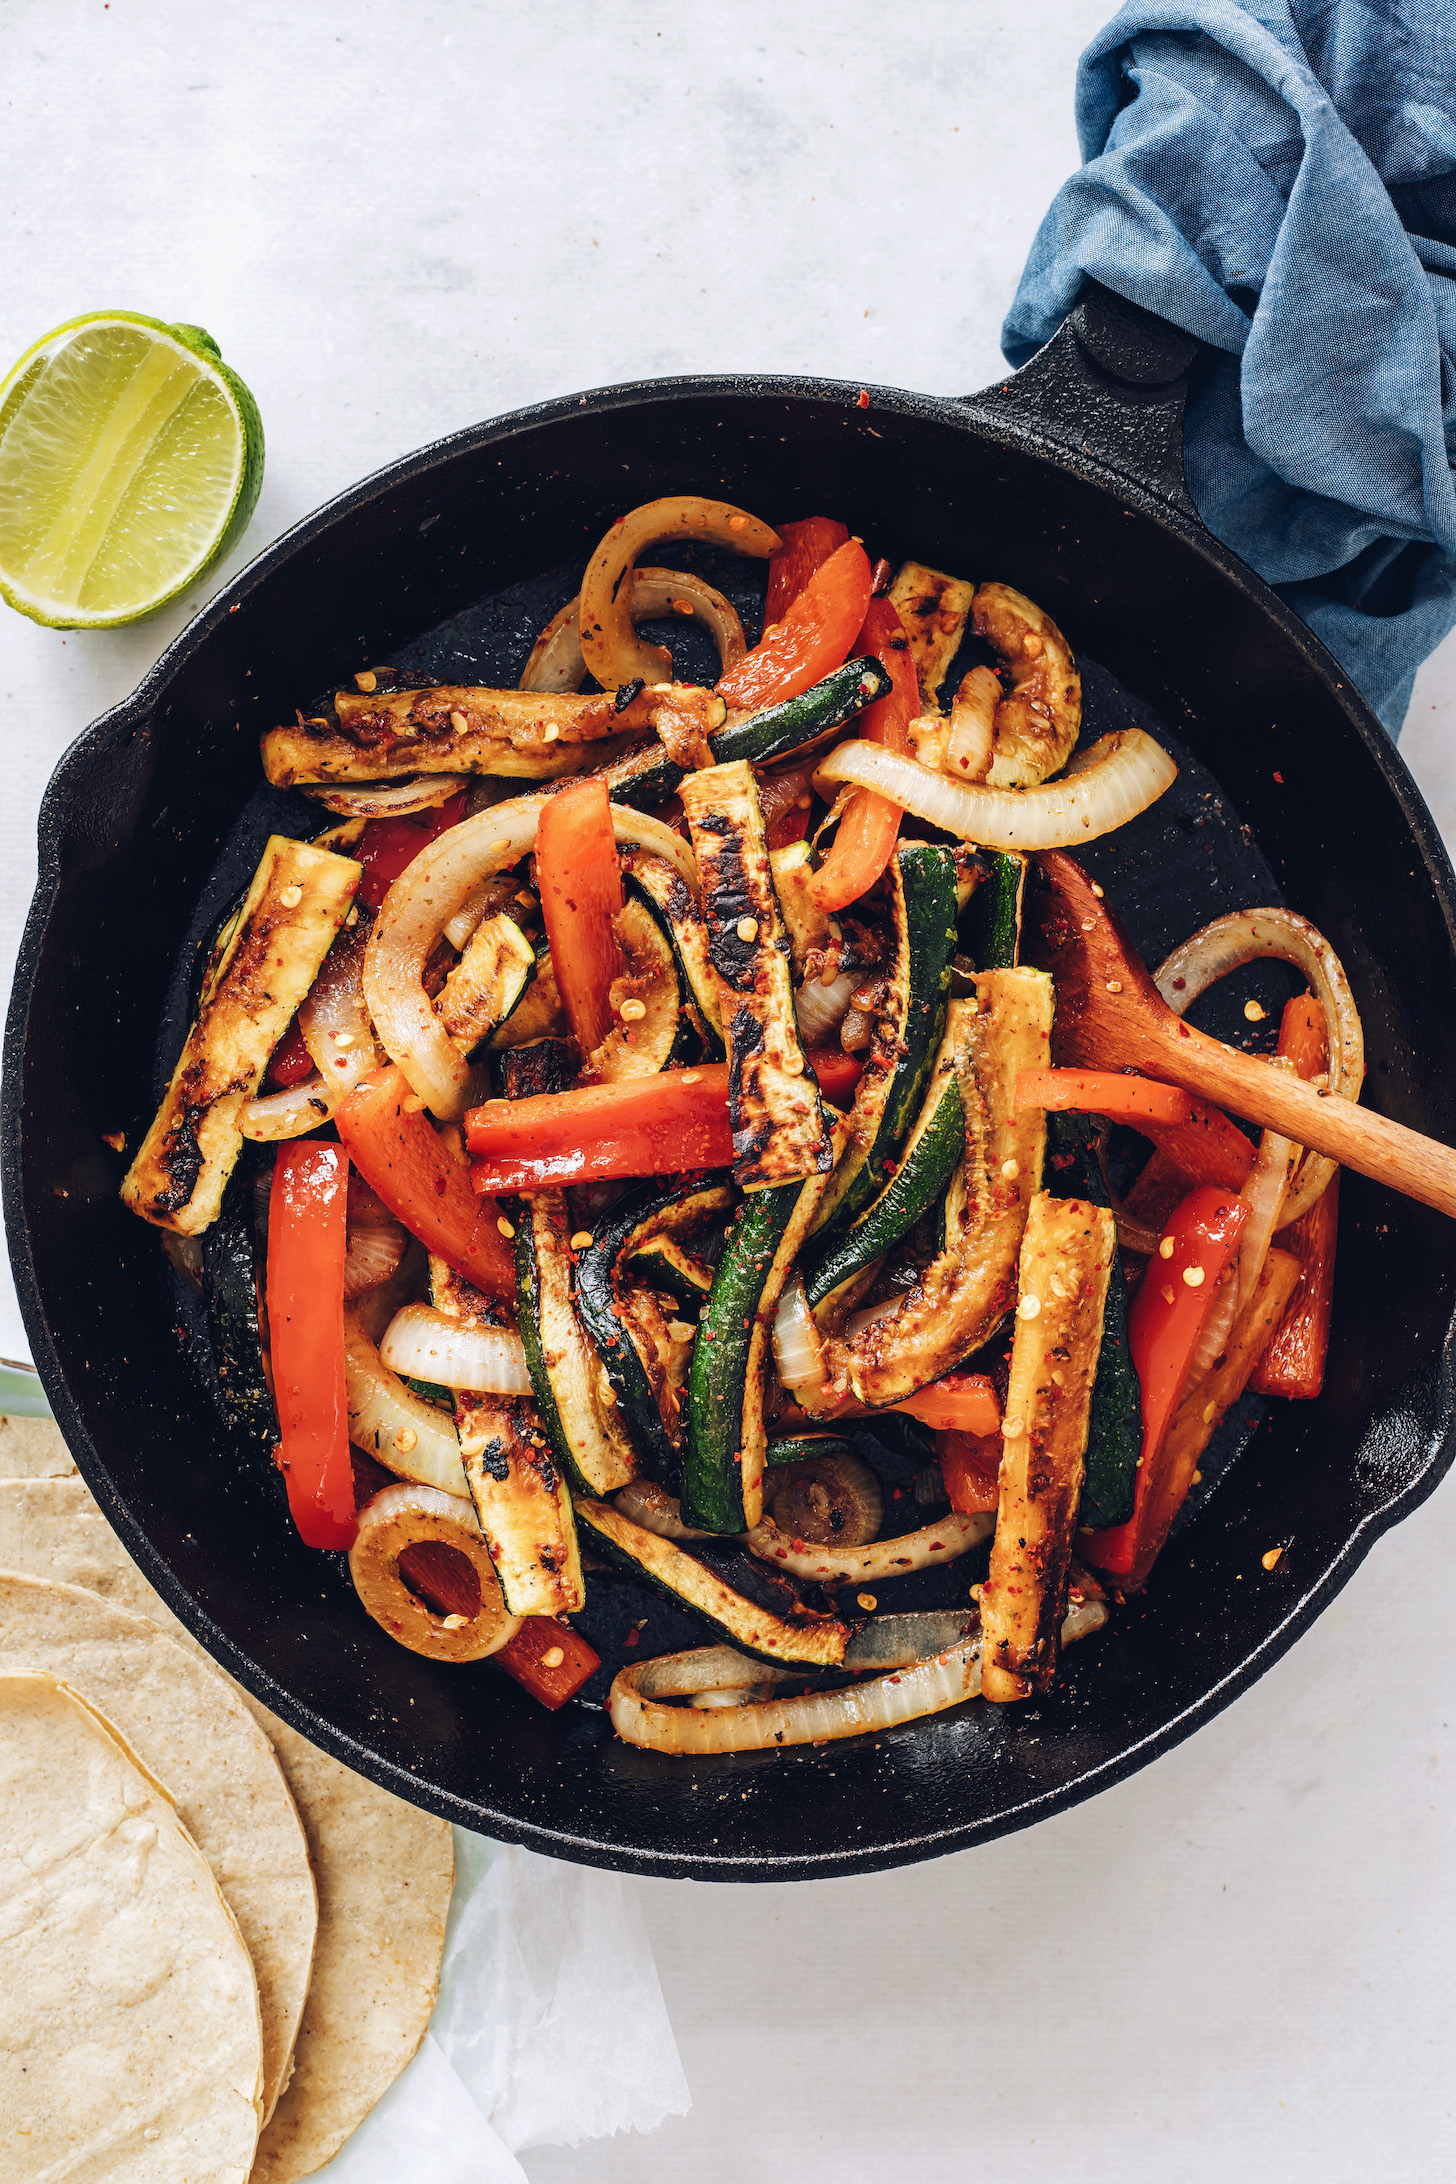 Skillet of sautéed onions, bell pepper, and zucchini with spices